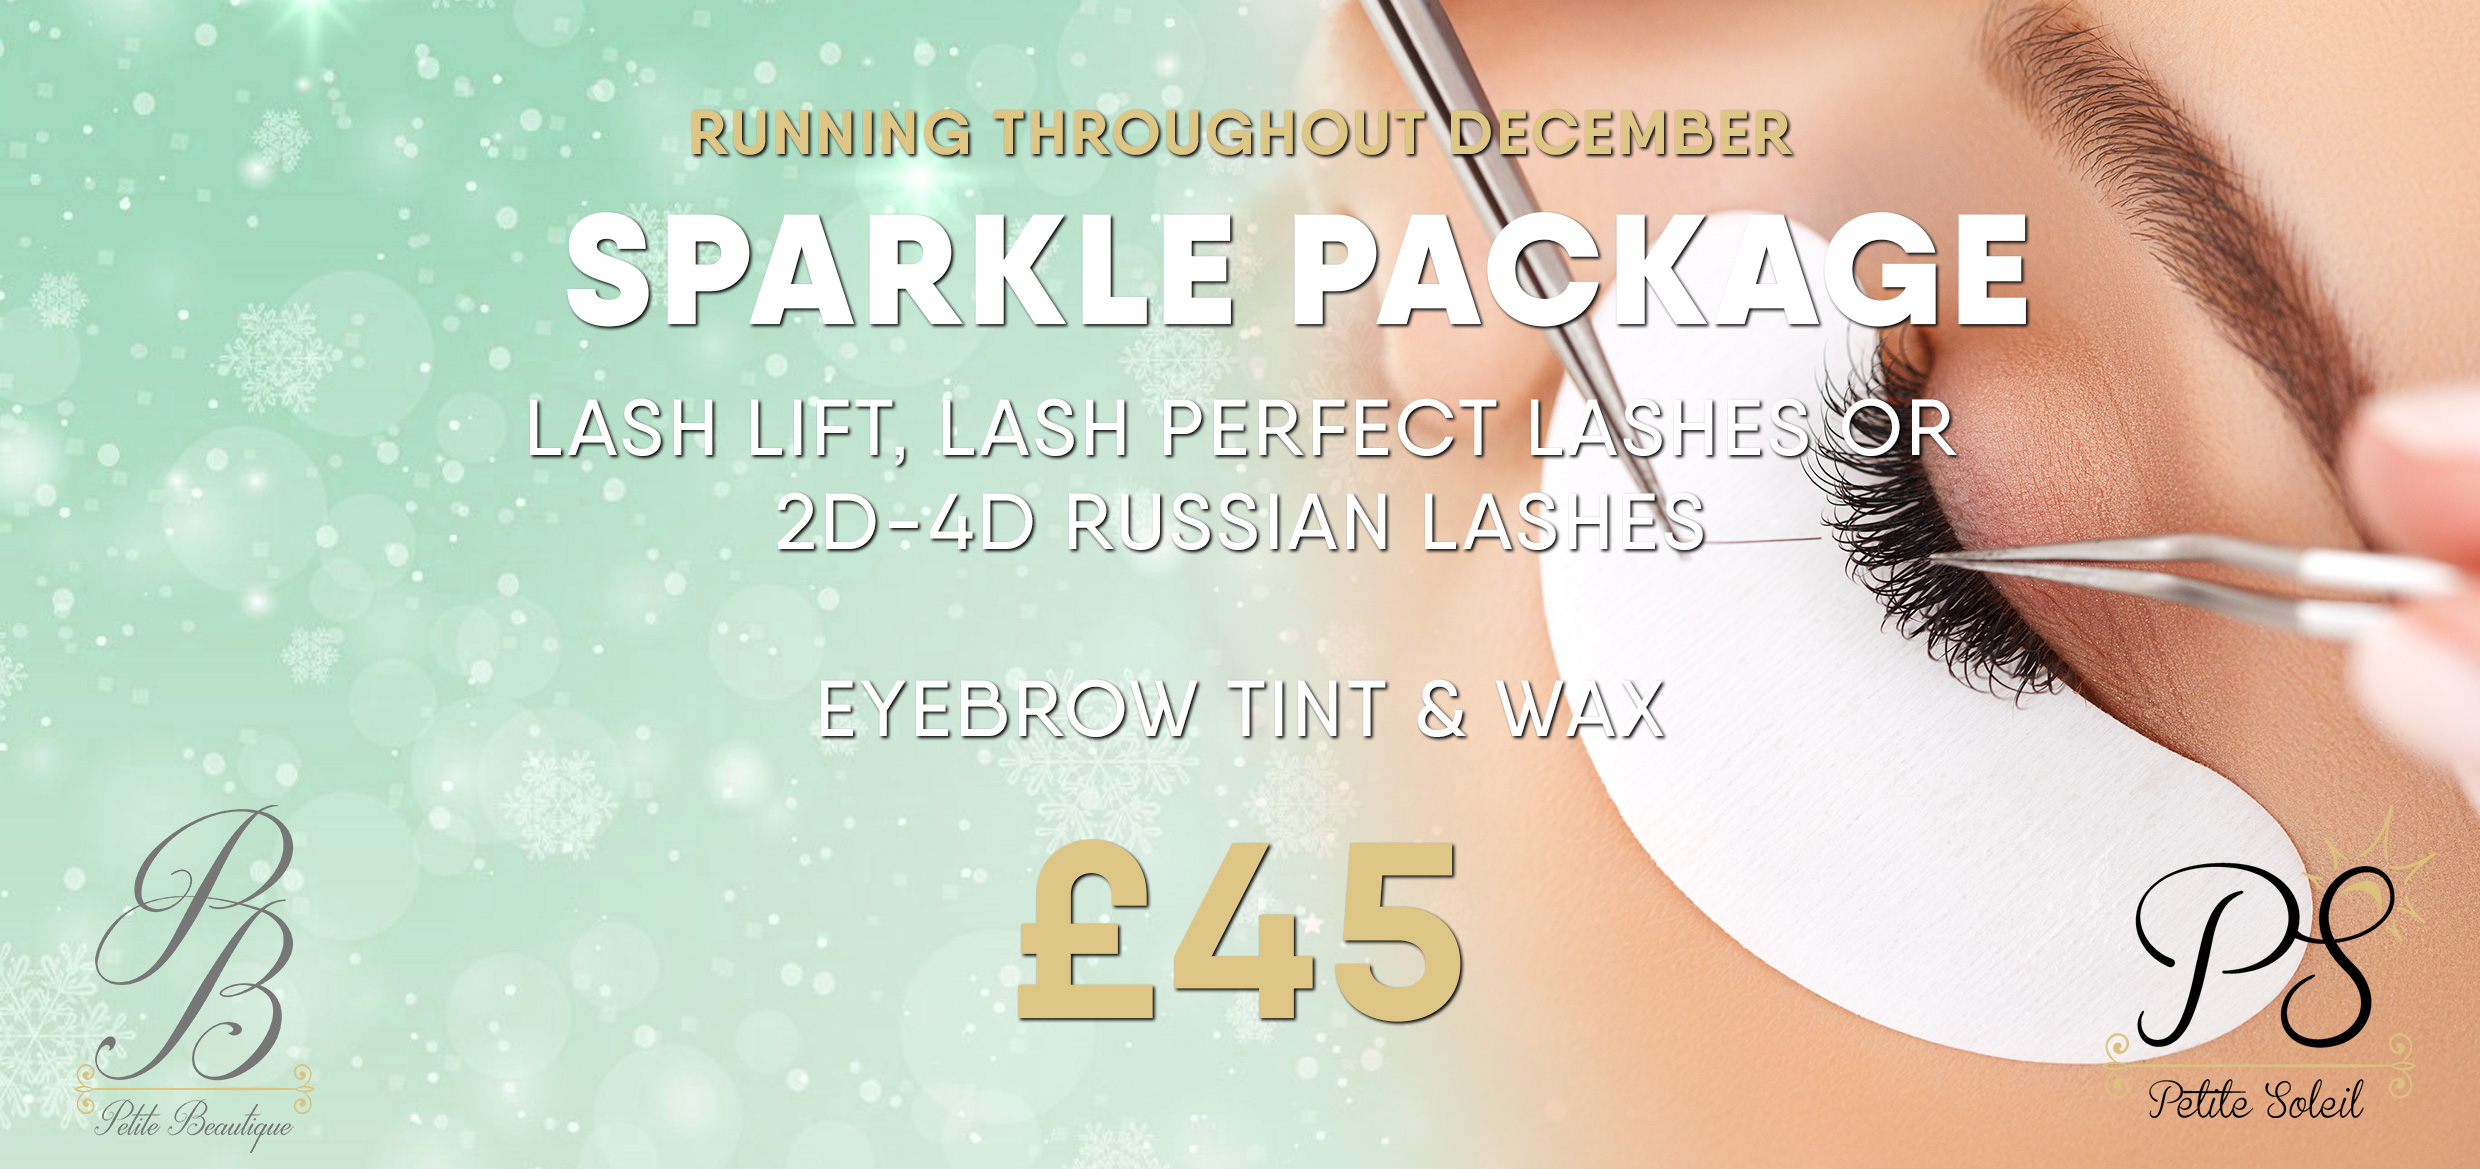 The petite salons 2017 christmas offers announced for Beauty salon xmas offers